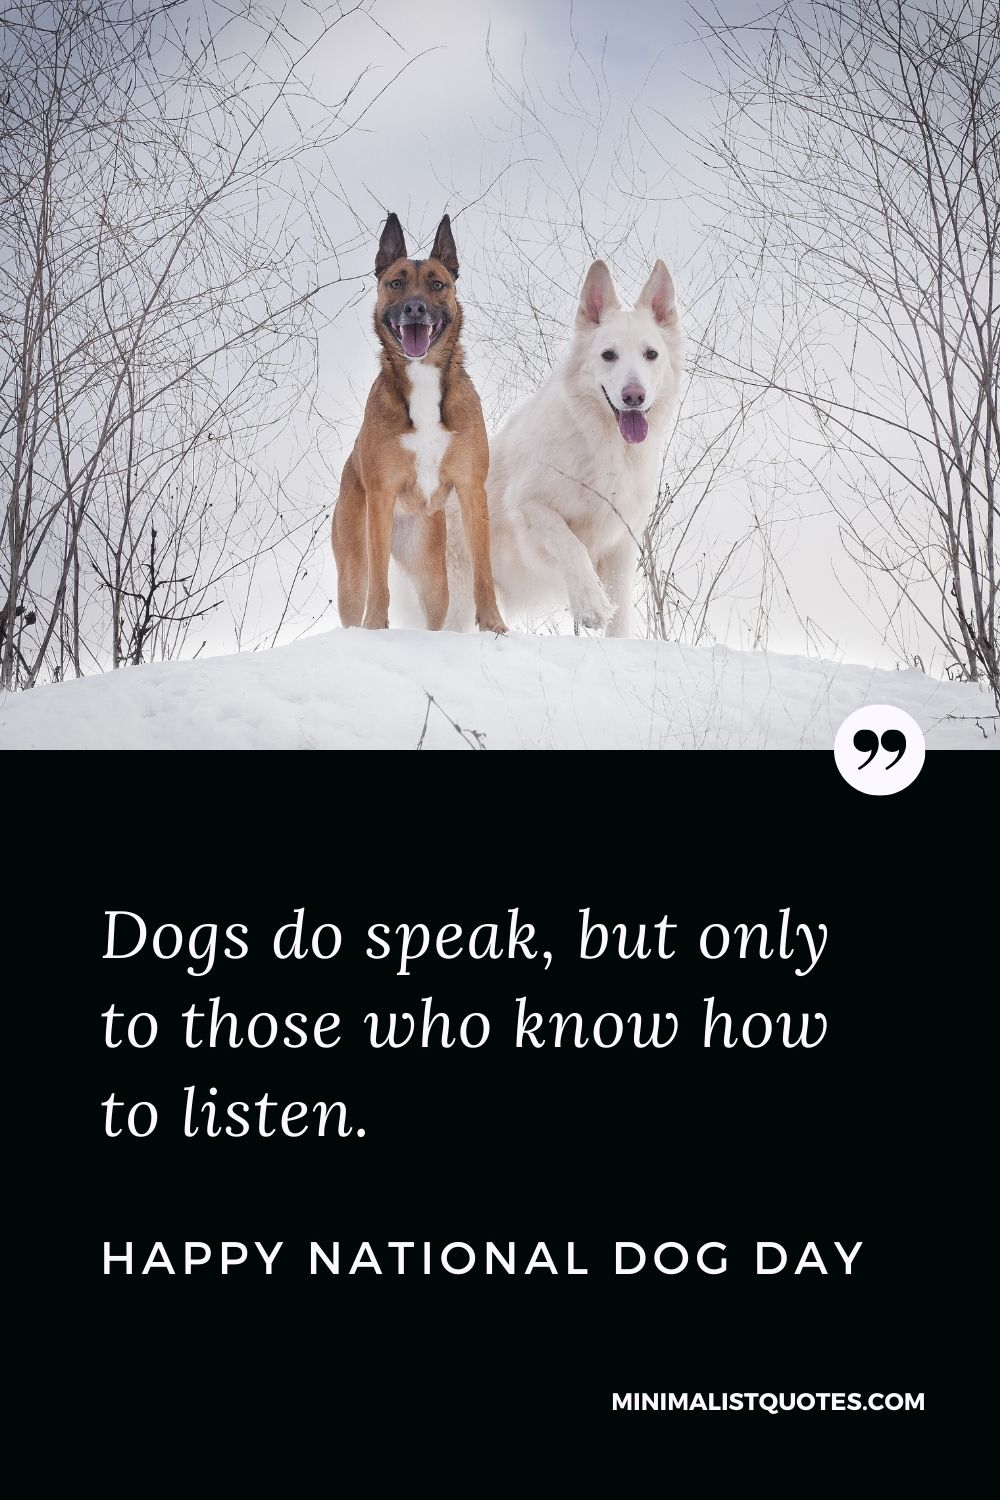 National Dog Day Quote, Wish & Message With Image: Dogs do speak, but only to those who know how to listen. Happy National Dog Day!